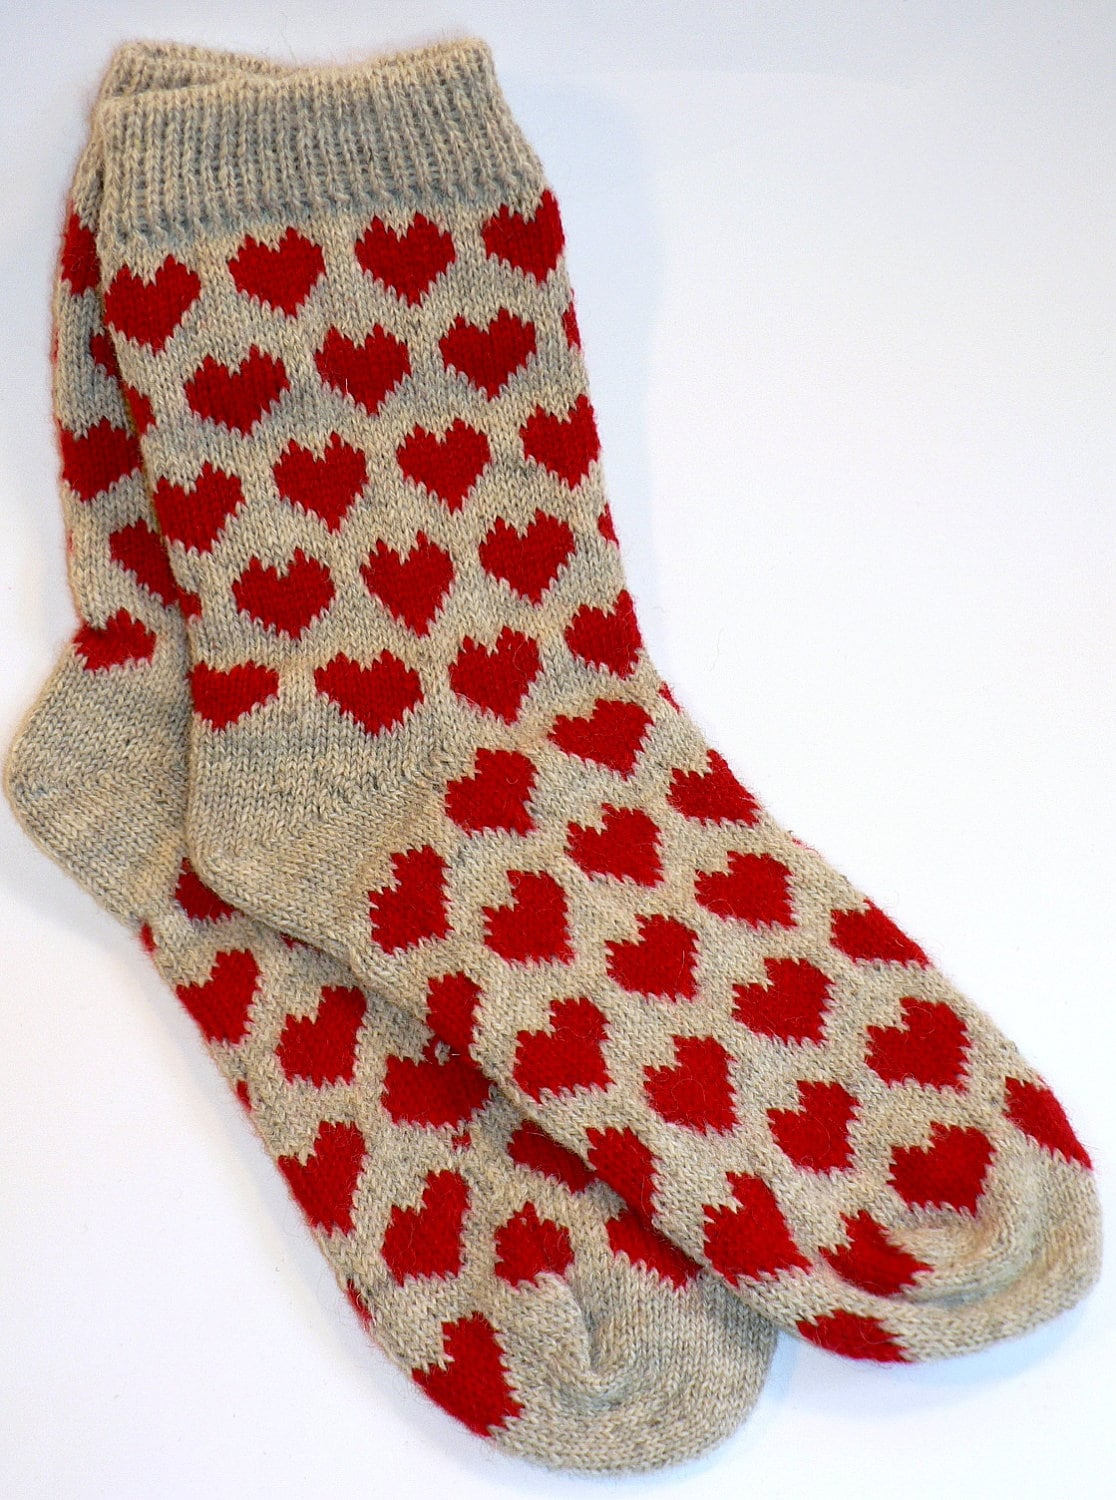 Free Sock Knitting Patterns. Explore our glorious gallery of free sock knitting patterns that will certainly keep you on your toes! From stripy to fair isle, thick and chunky to fine and soft, our cosy collection features foot flattering patterns for all abilities from well known brands to independent designers%(K).